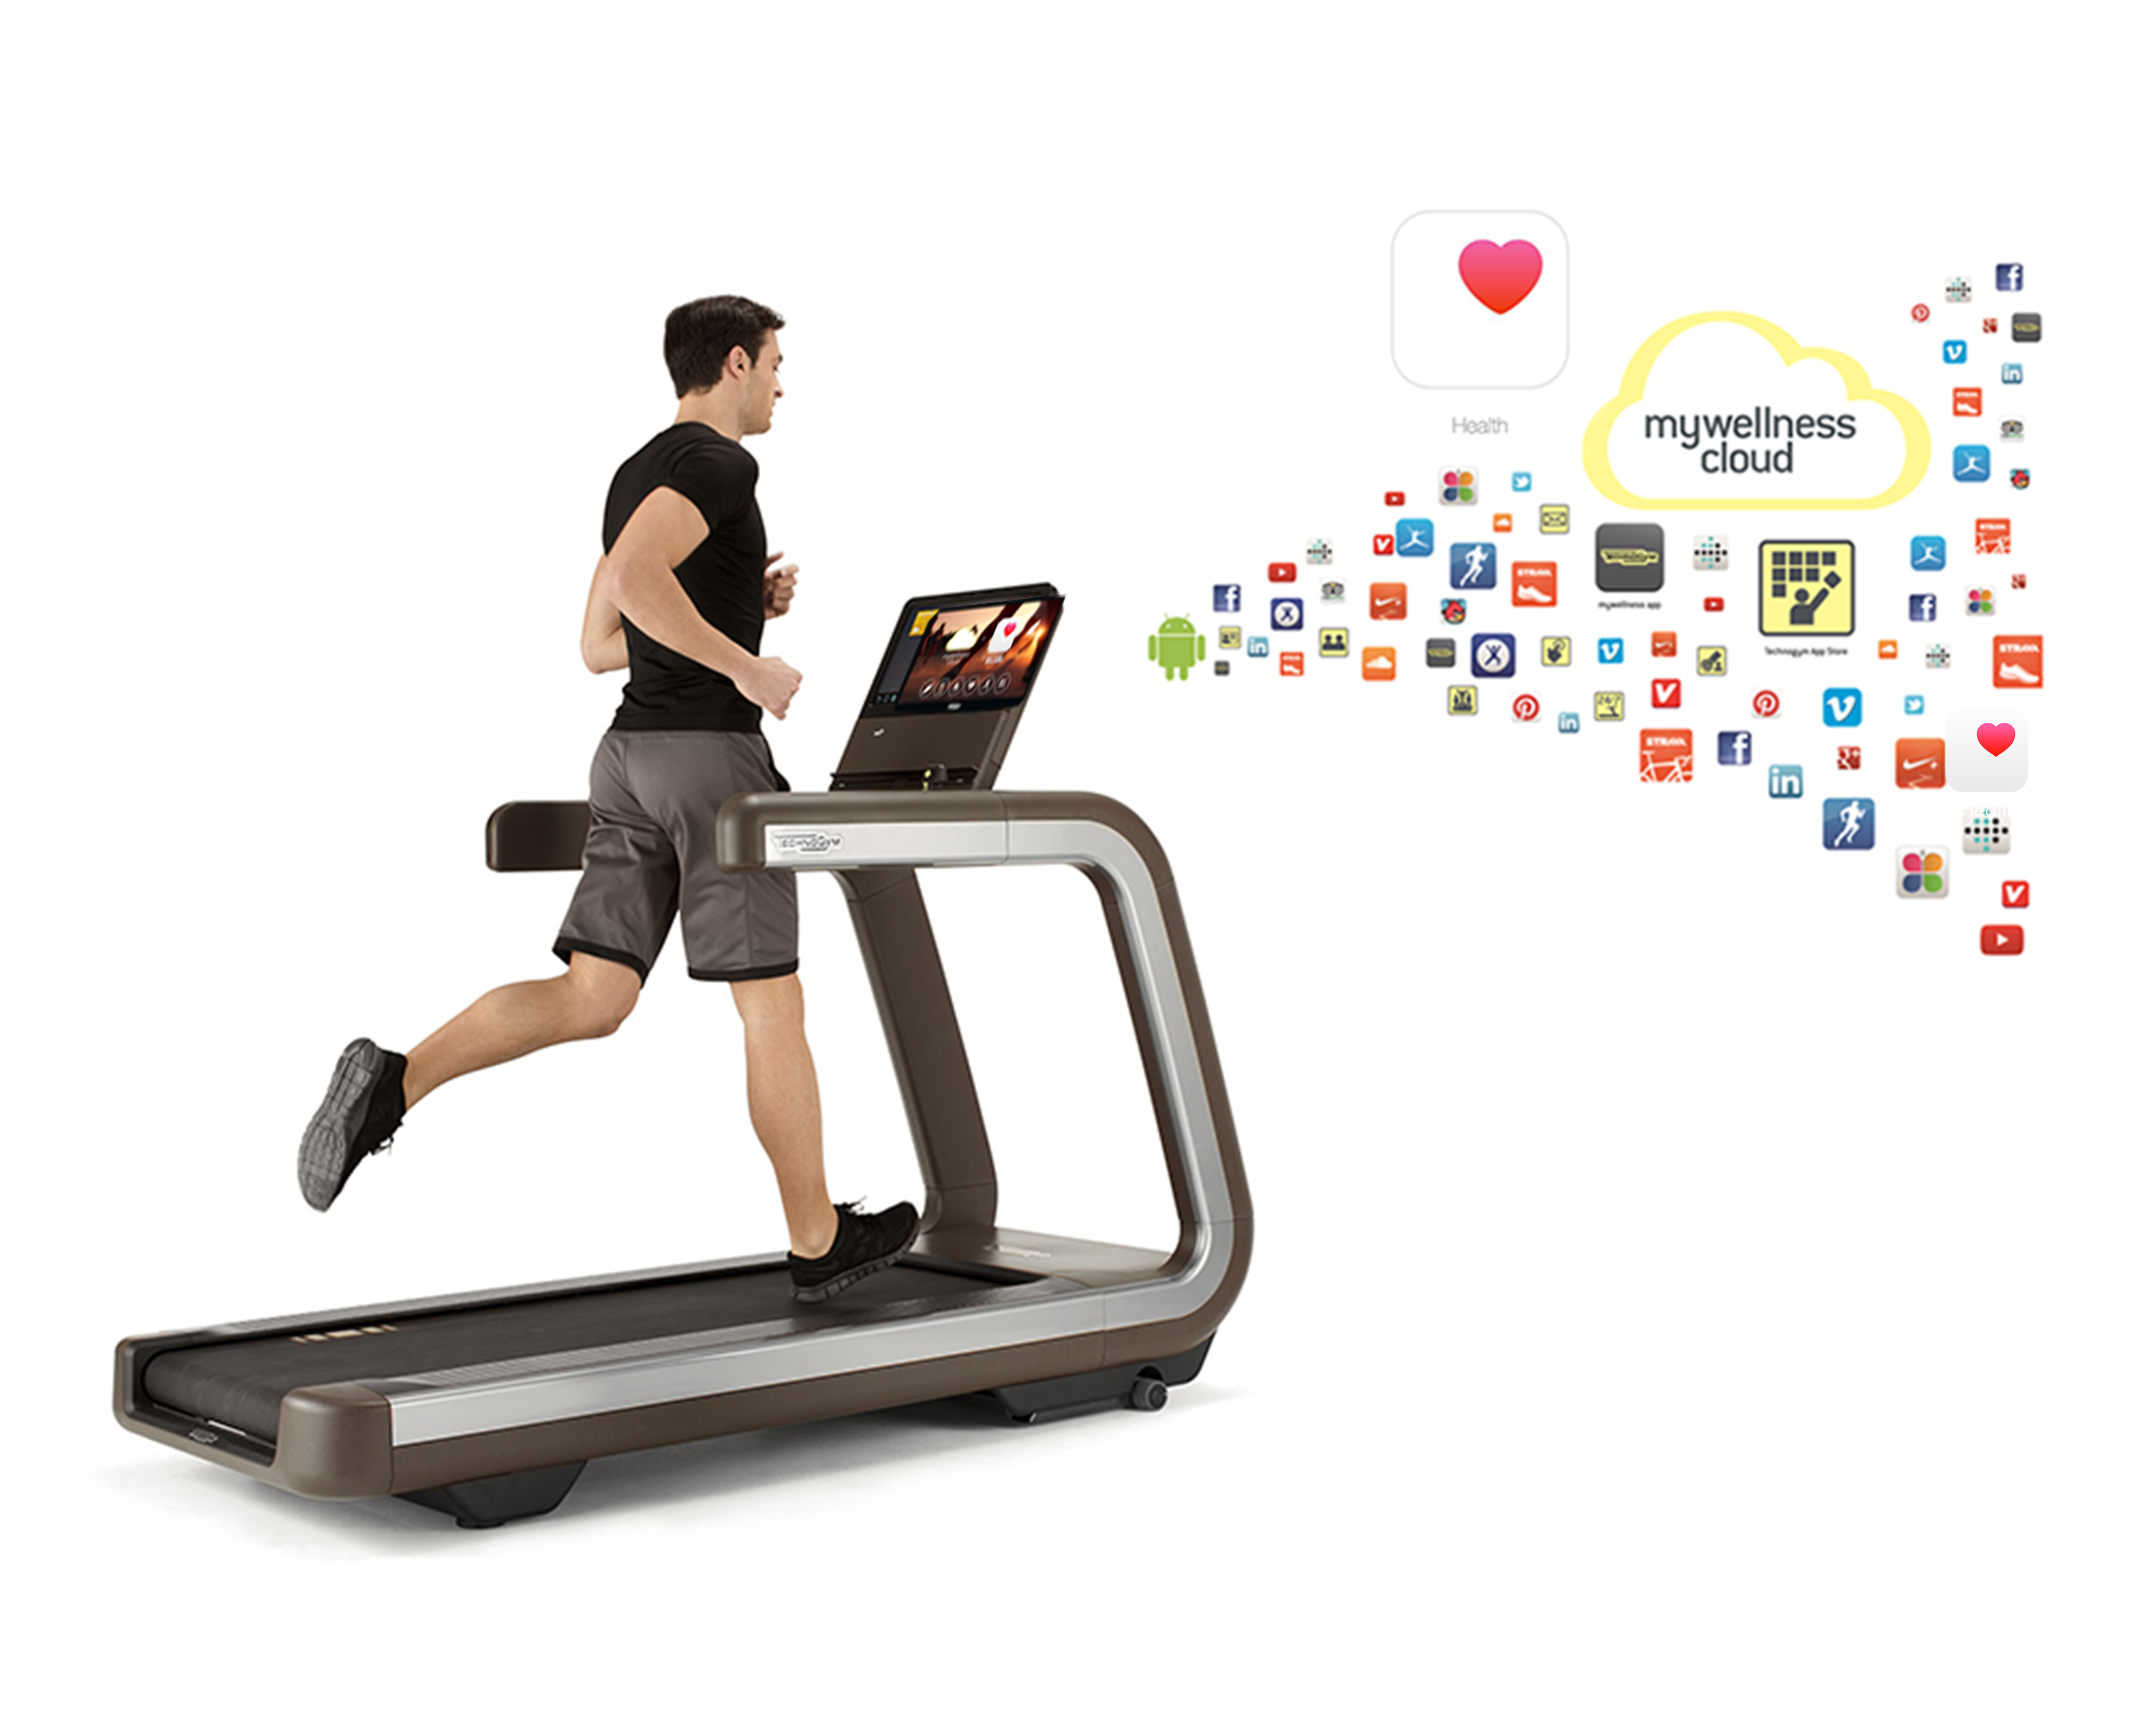 Technogym Announces New Integration With Apple Healthkit At